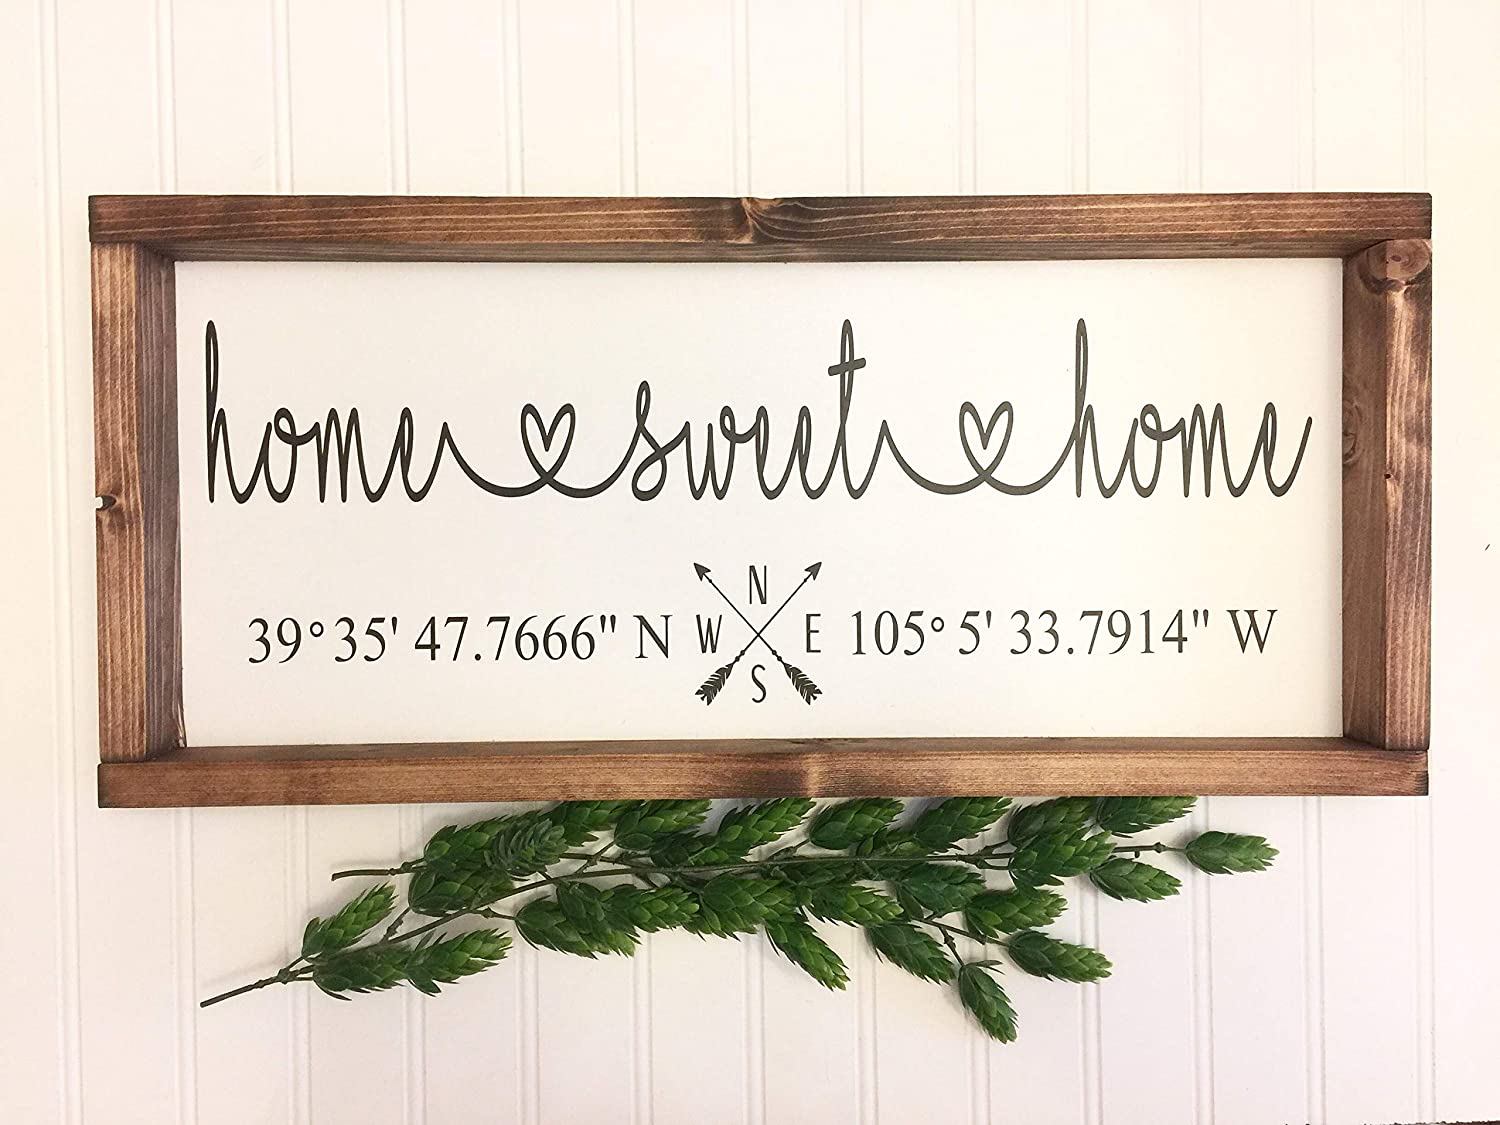 Flowershave357 Home Sweet Home Our First Home Coordinates Latitude Longitude GPS Sign Homebuyer Gift Realtor Sign Housewarming Gift Wood Sign Farmhouse